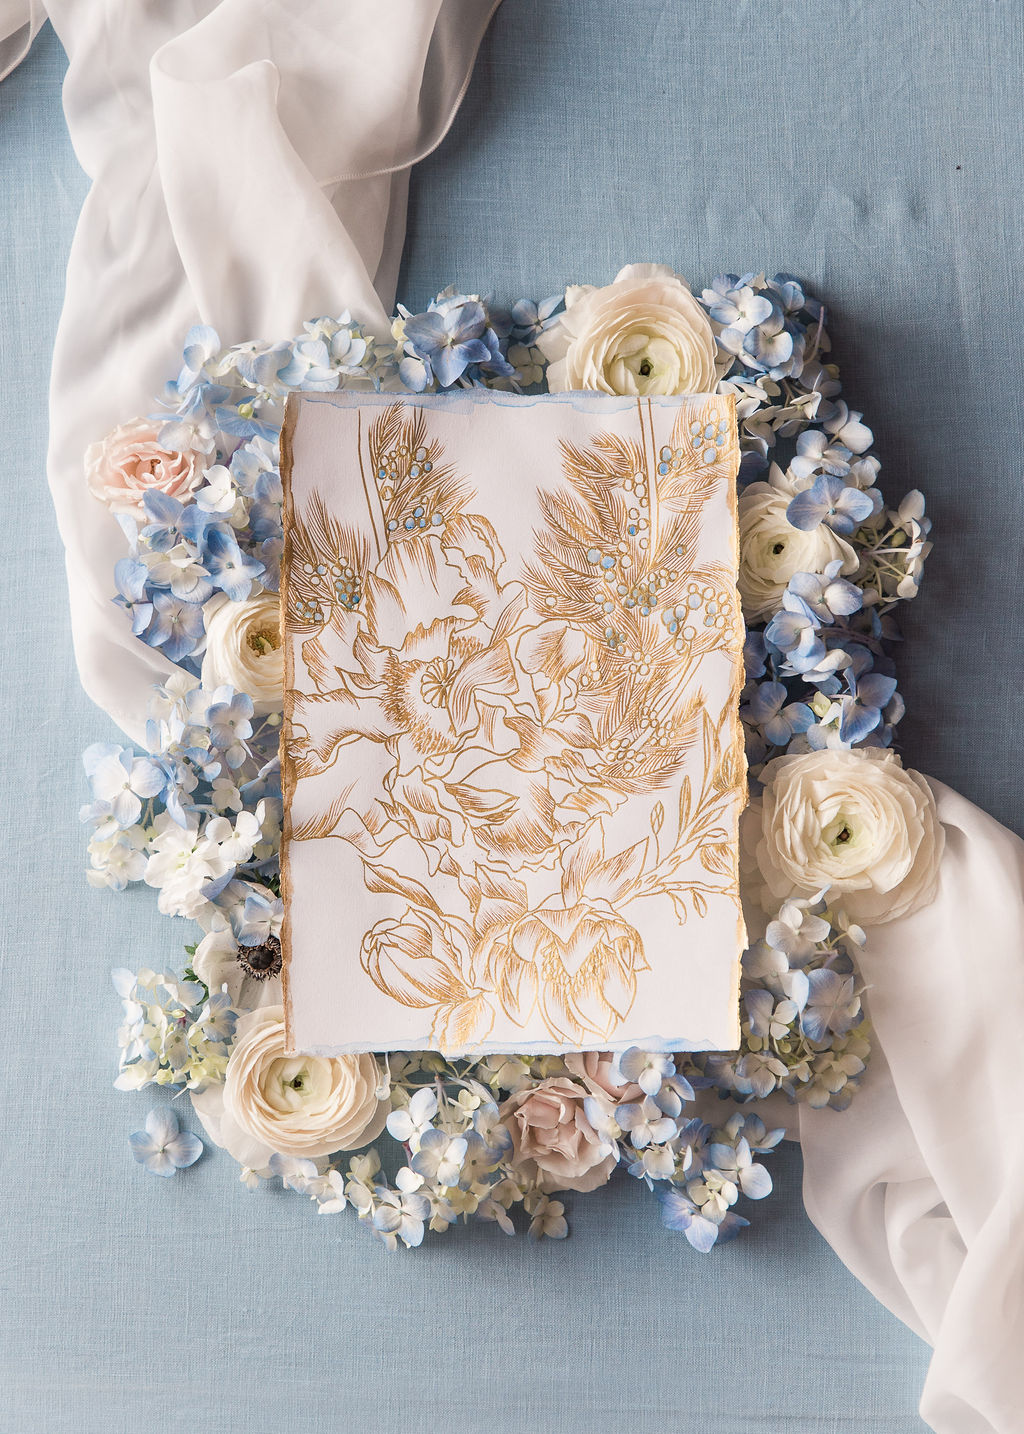 Gold calligraphy floral illustration statement piece with hints of pale blue for an intimate event in the south of France.